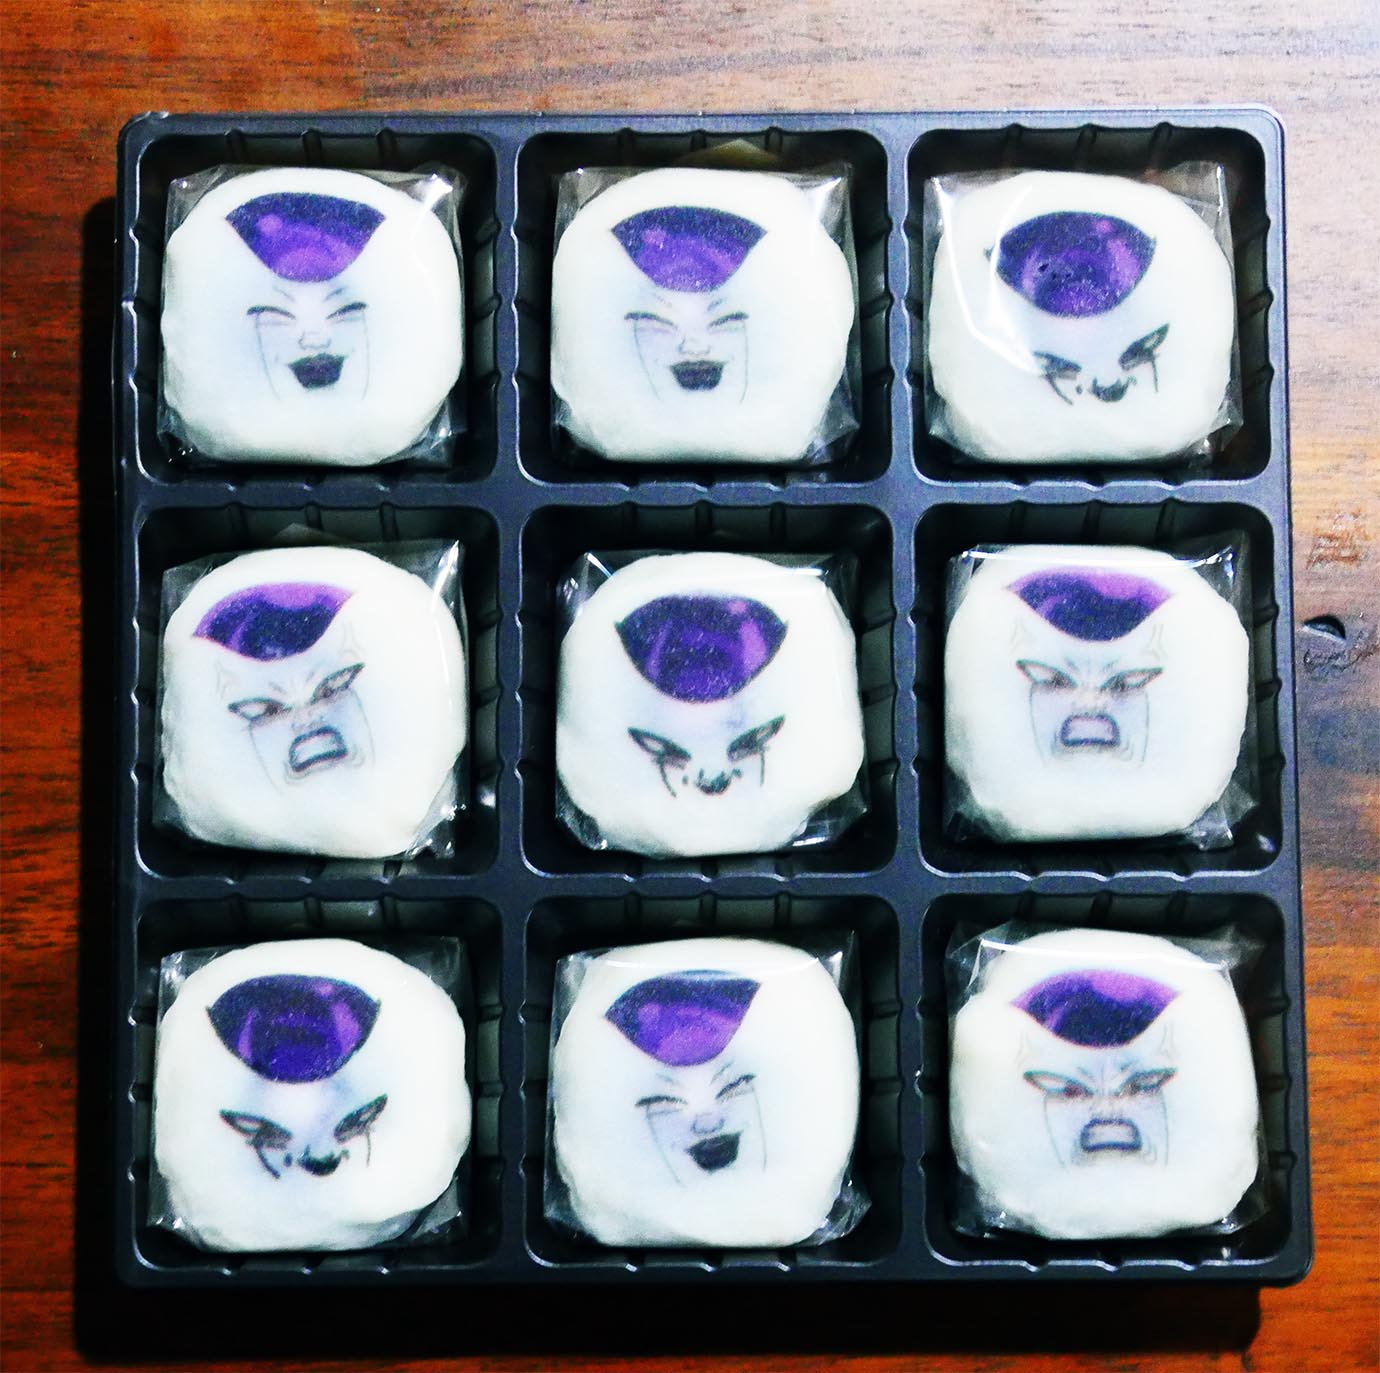 daiefu-of-freeza20